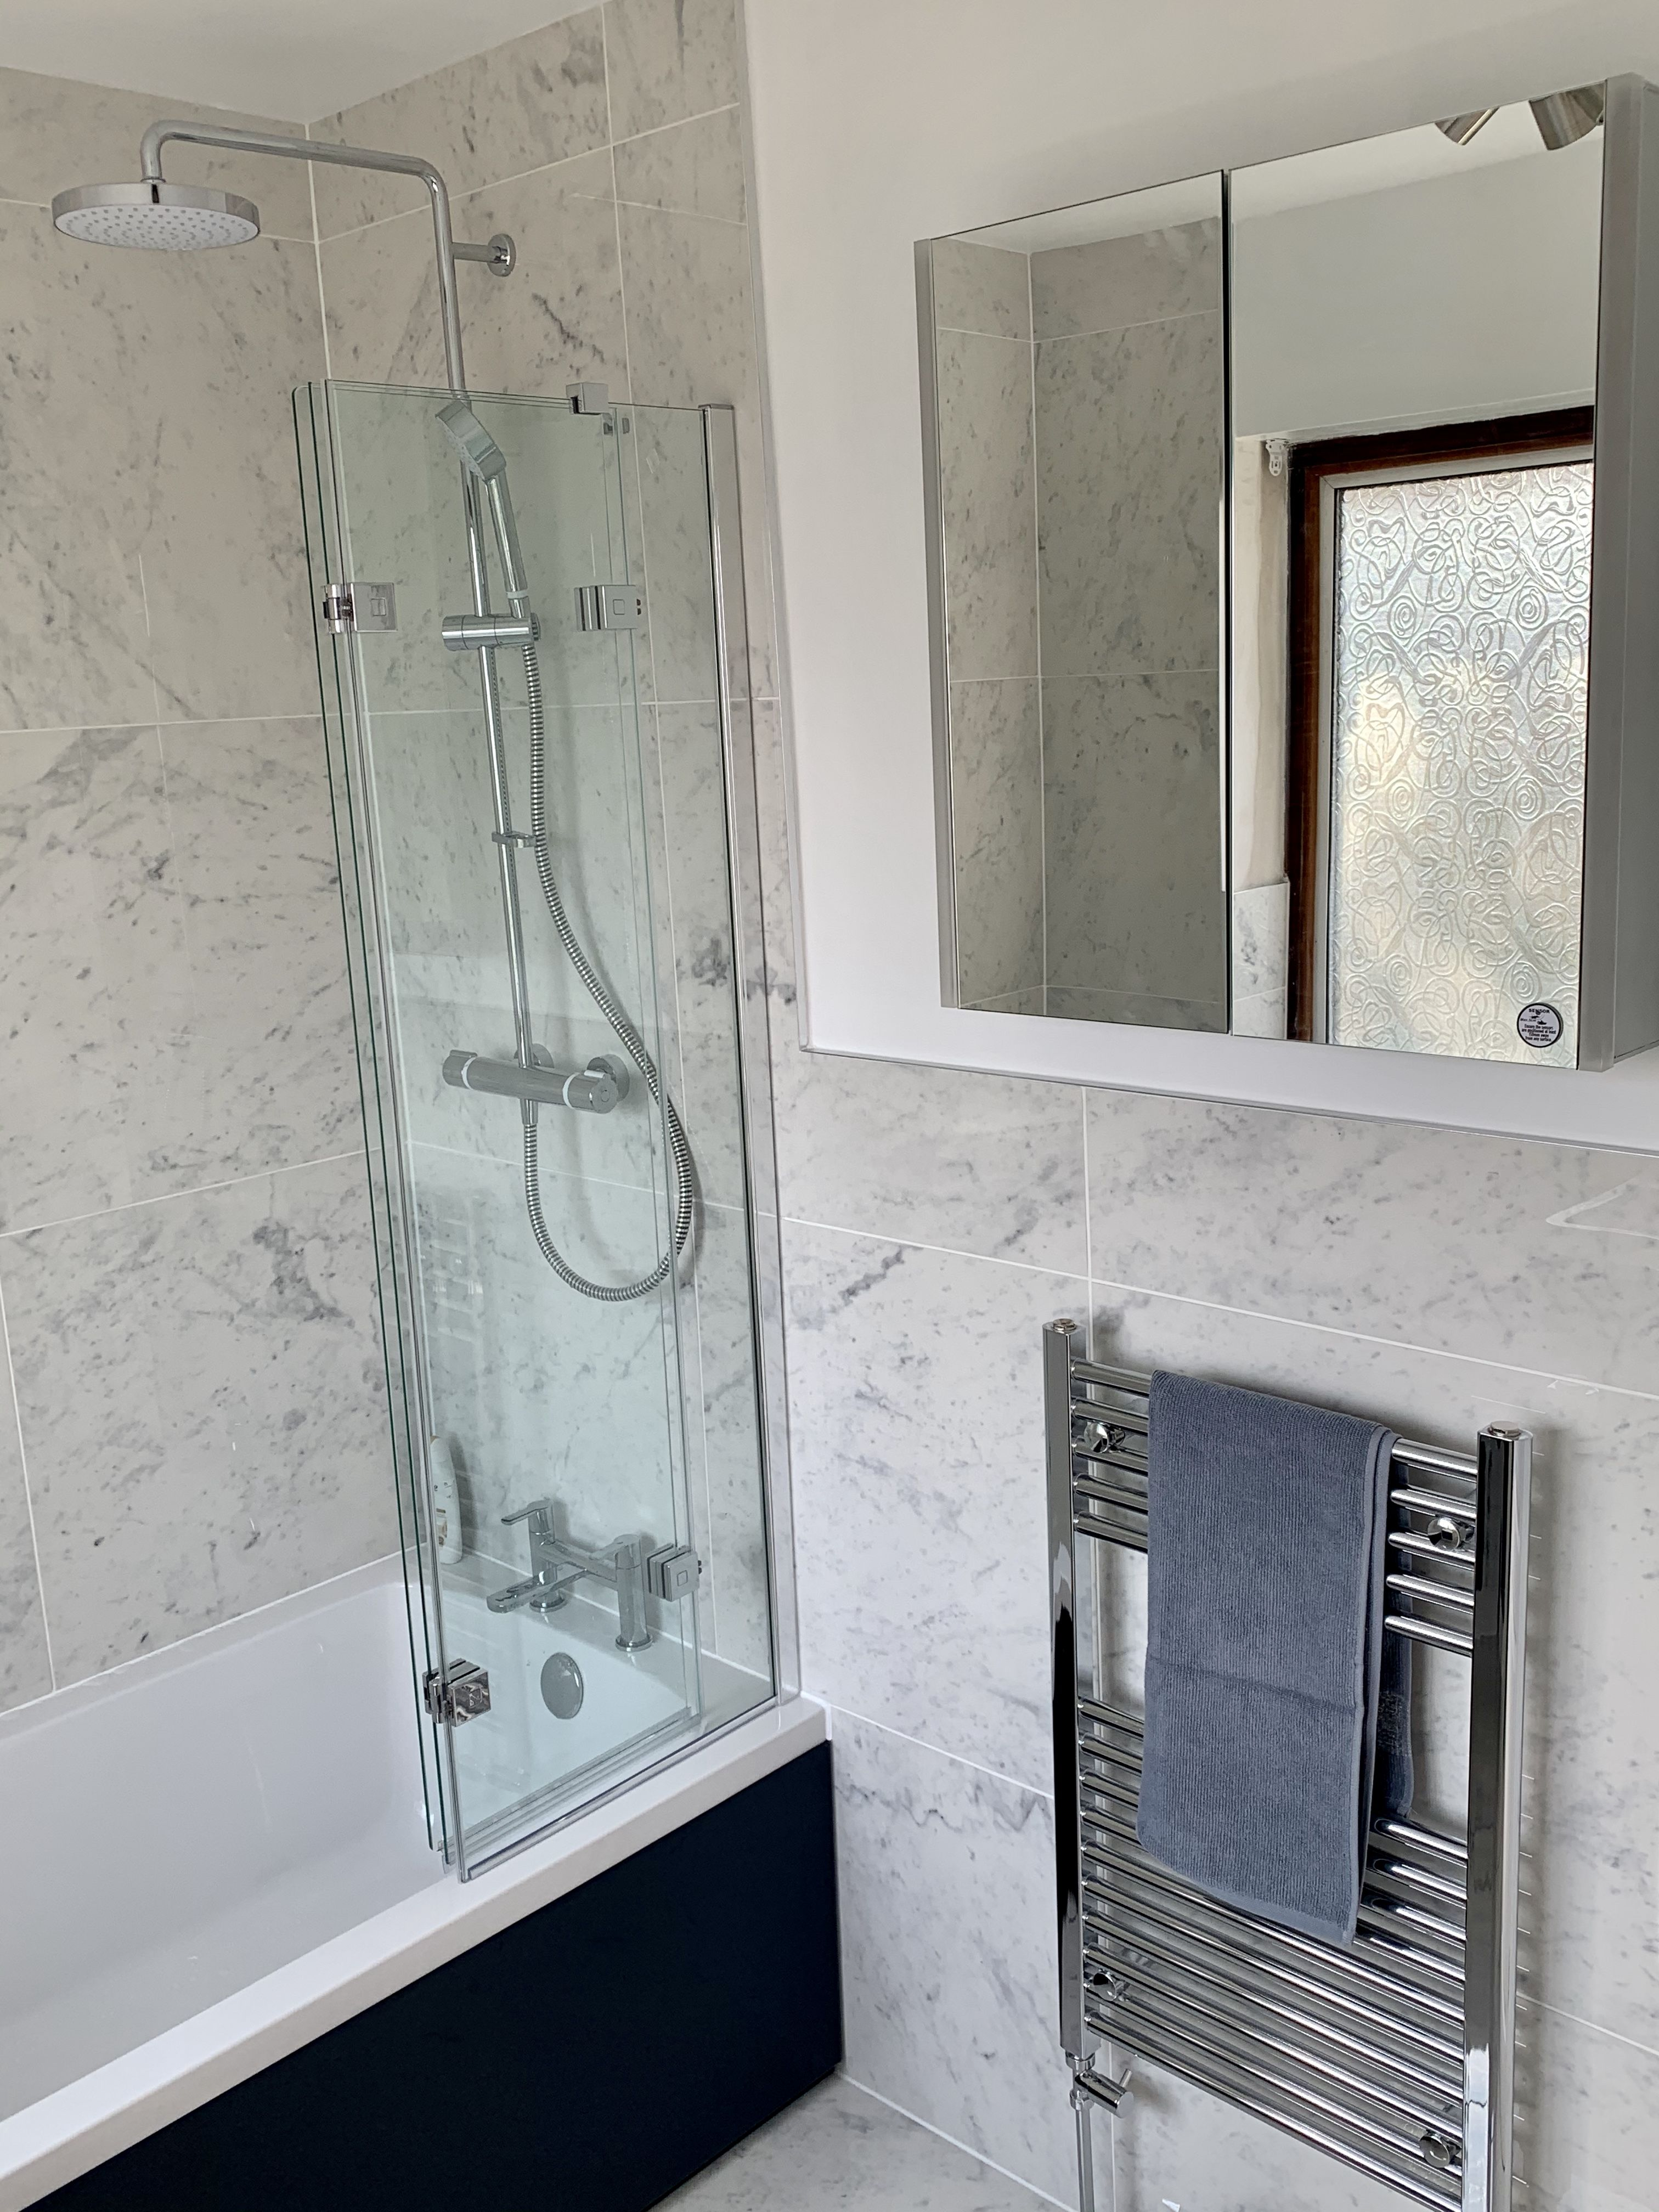 Marc Anthony Bathrooms in 2020 | Shower bars, Shower ...